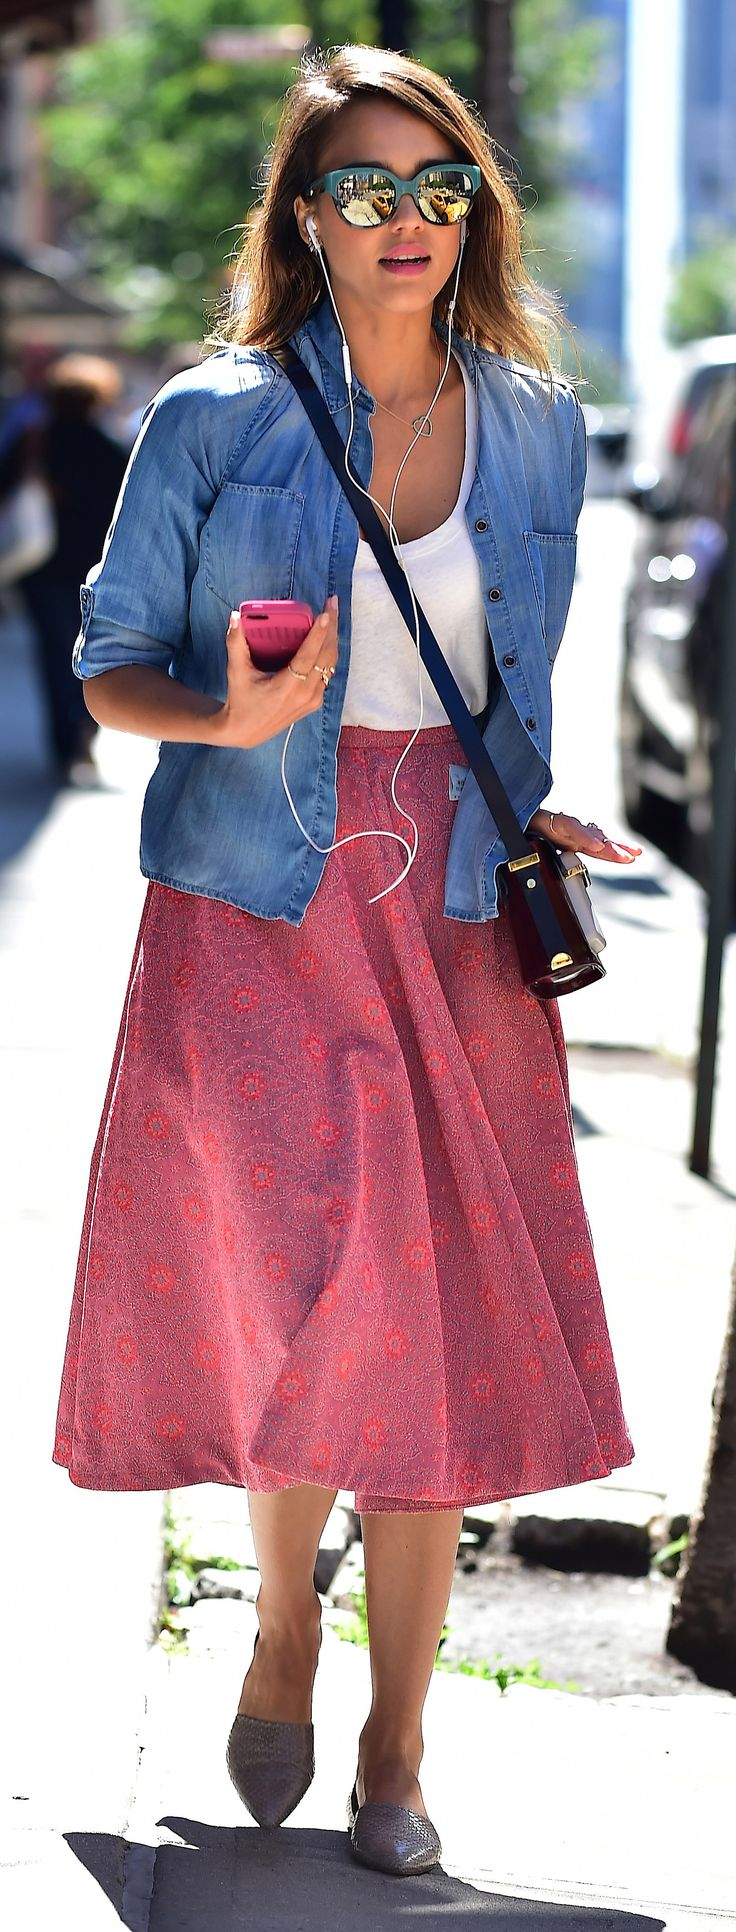 324 best jessica alba style trends images on pinterest jessica alba style hair and clothing Jessica alba fashion and style